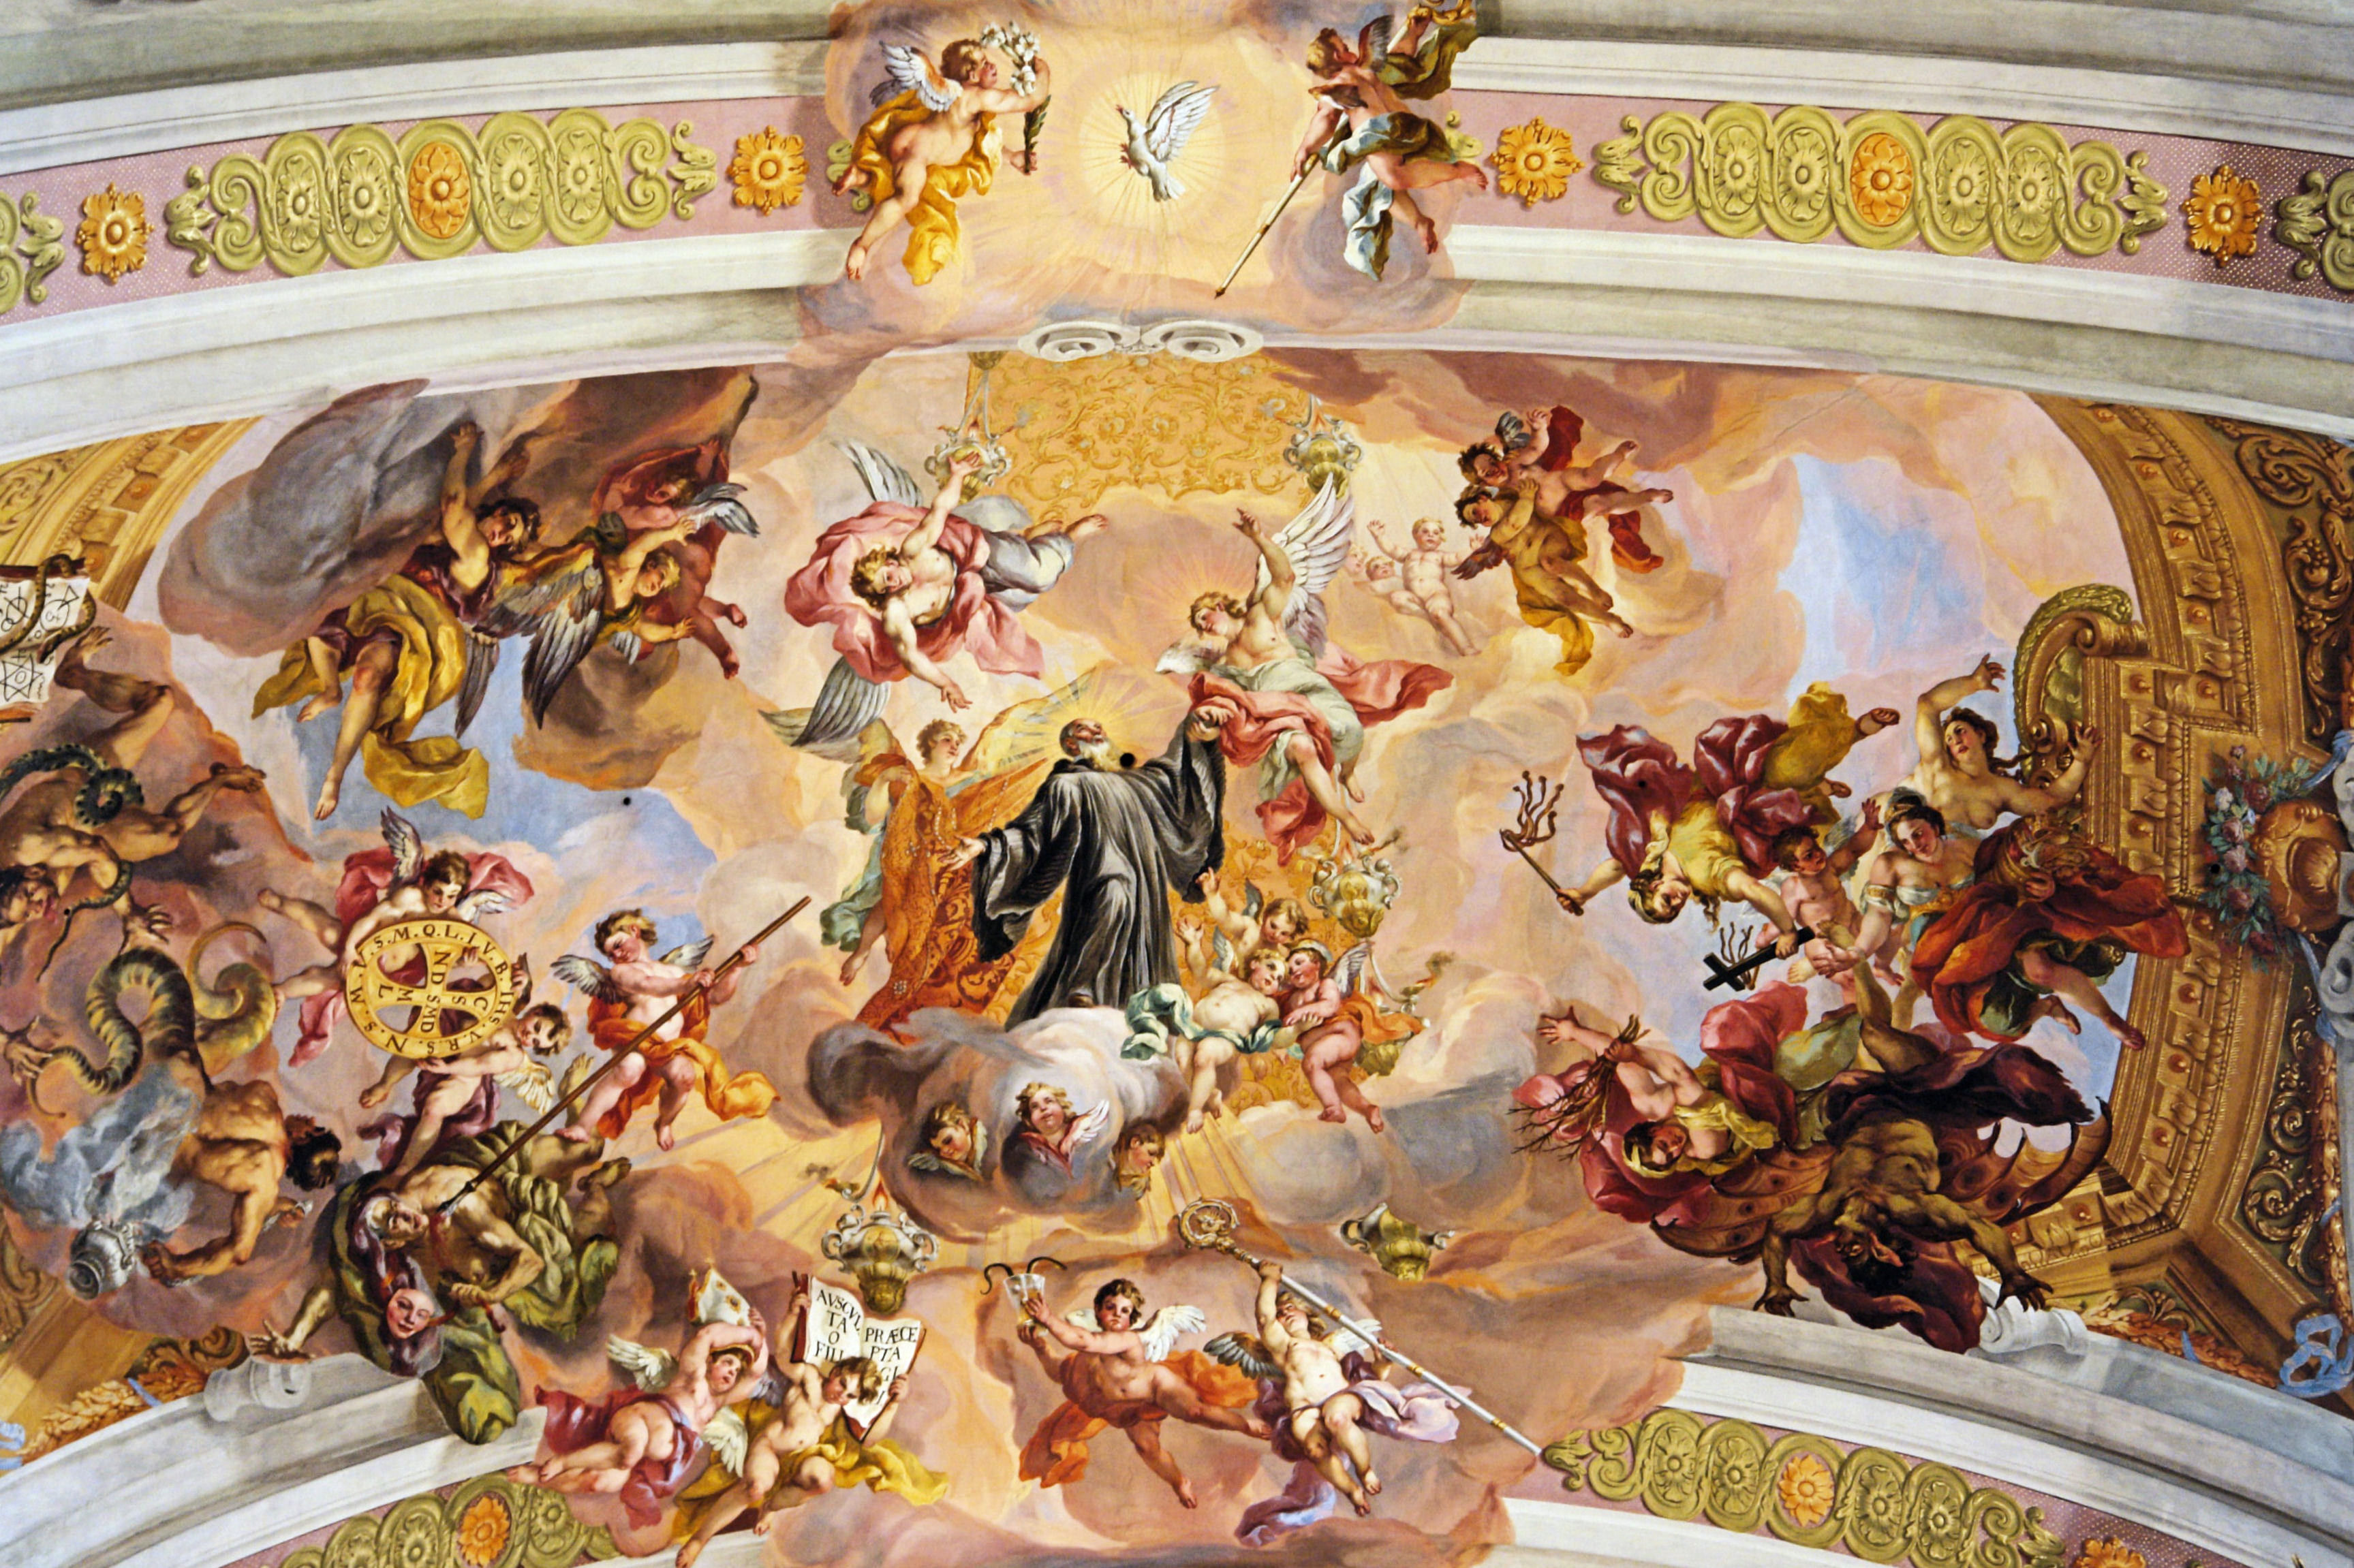 St._Benedict's_triumphal_ascent_to_heaven_by_Johann_Michael_Rottmayr_-_Melk_Abbey_Austria